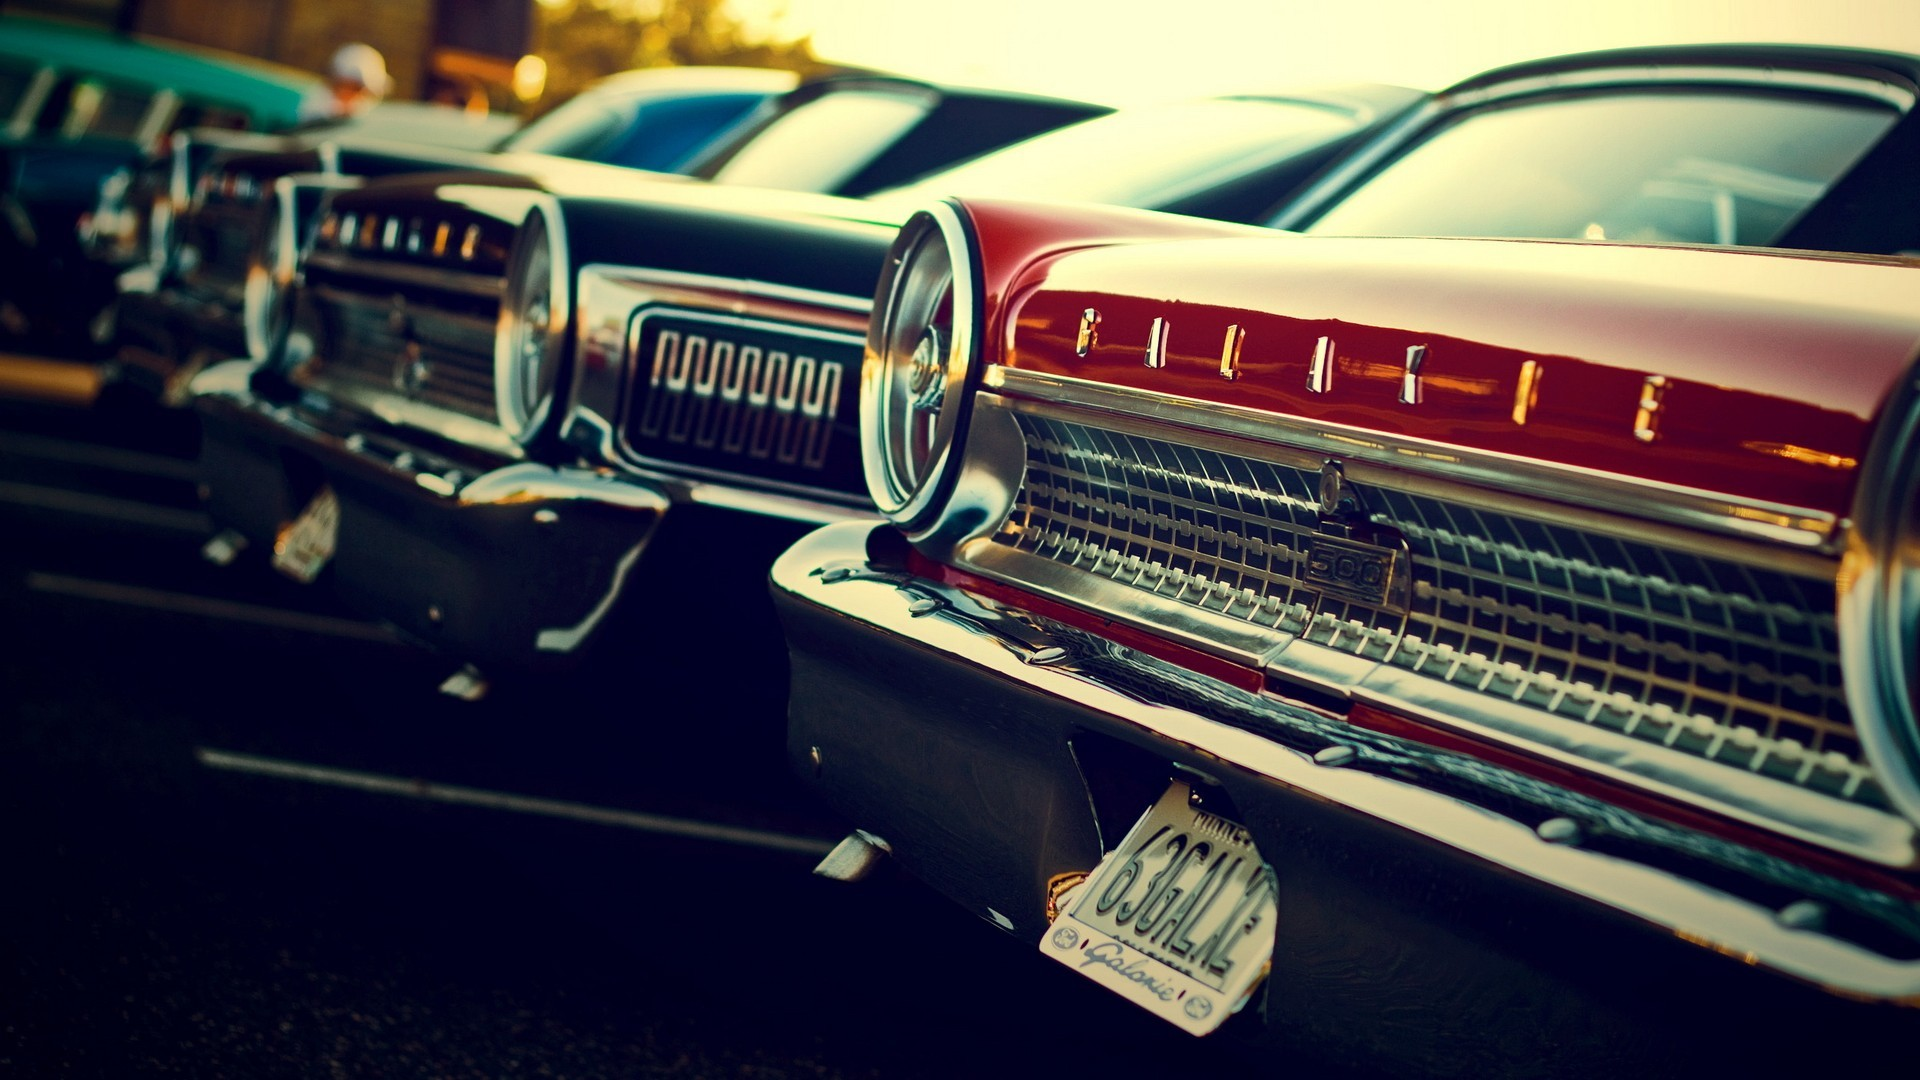 1920x1080 Classic Cars Wallpaper, 1920x1080 Wallpapers, HD 1080p, Desktop .